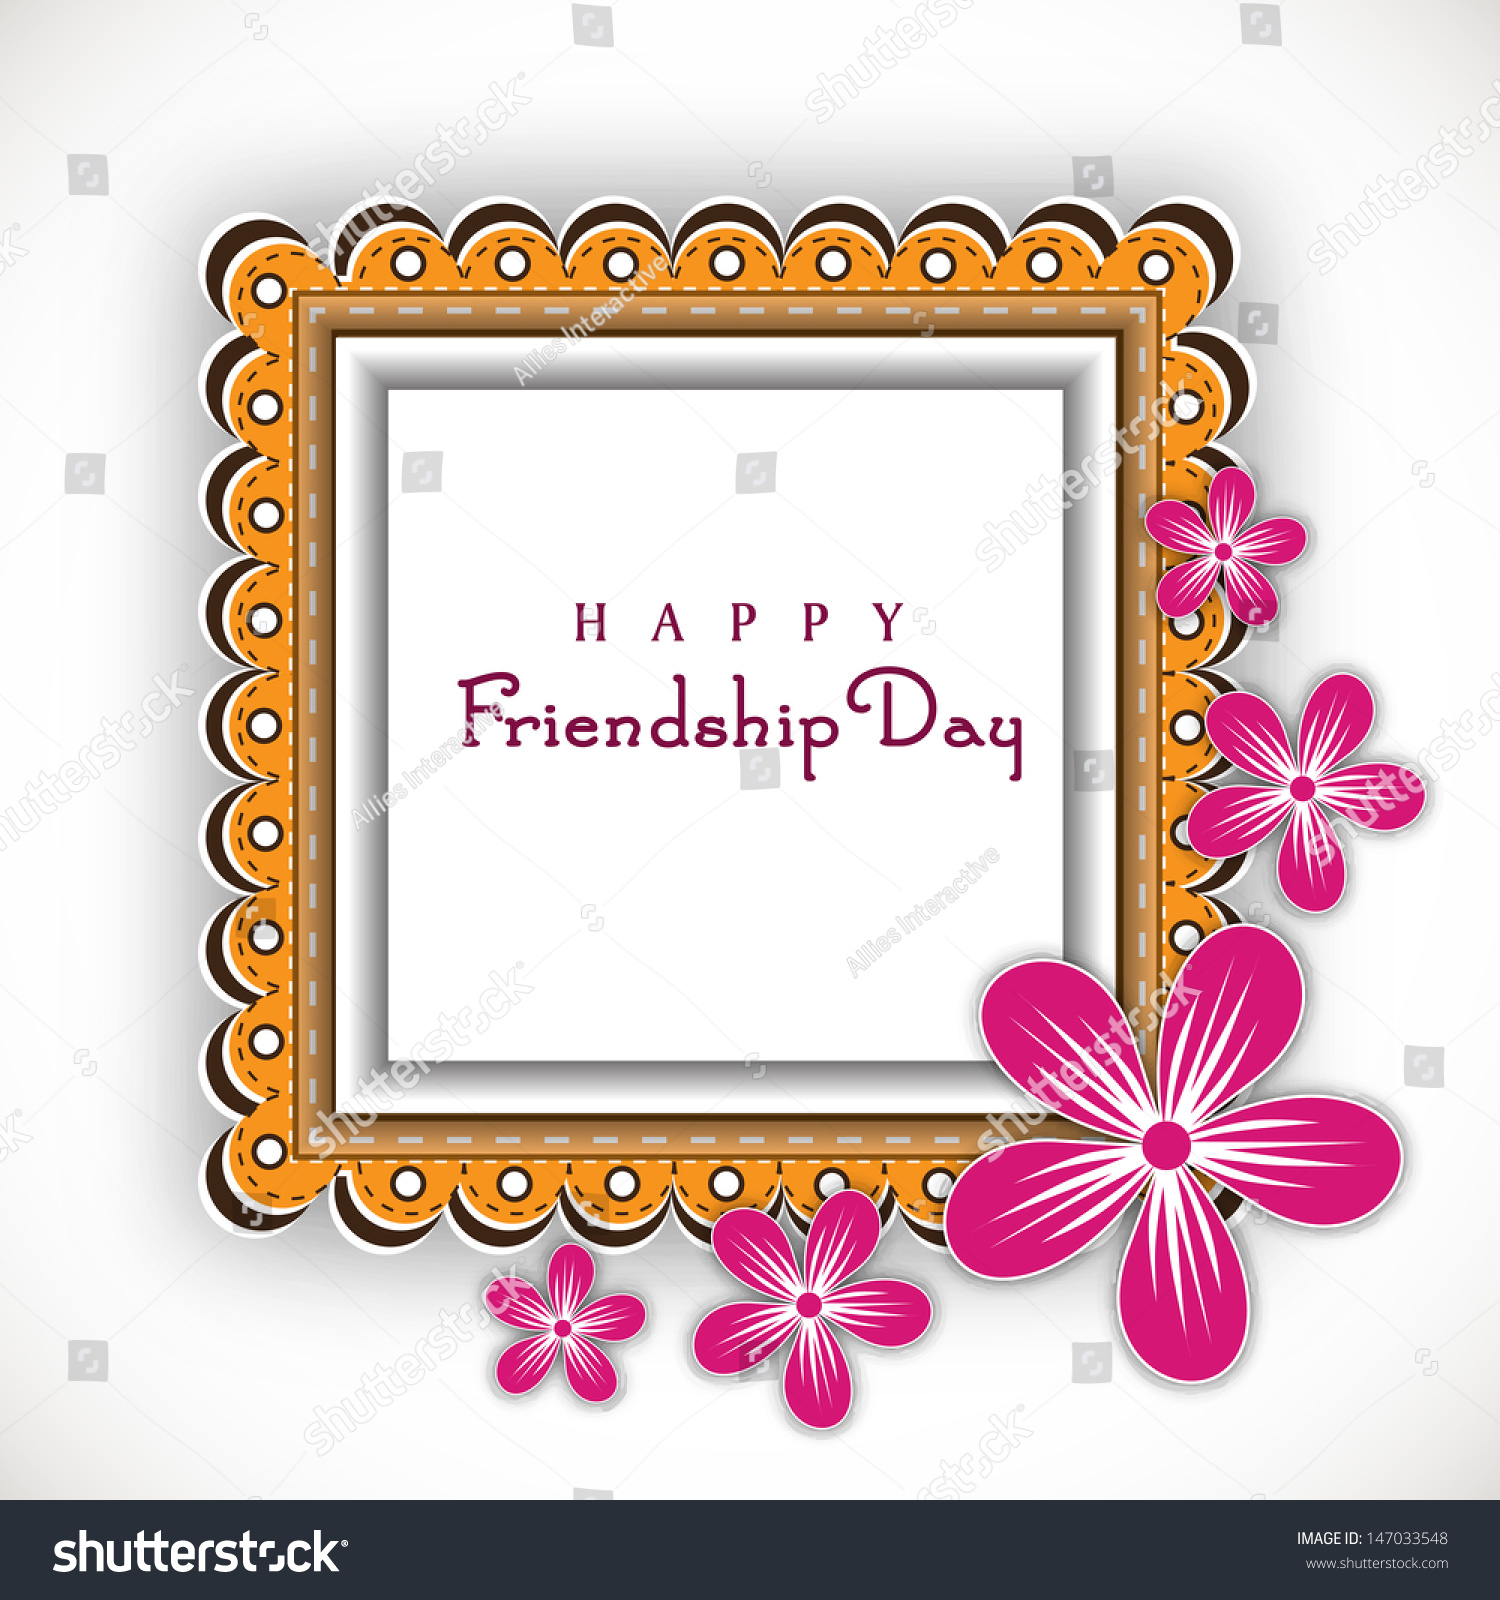 abstract photo frame with text happy friendship day on floral background